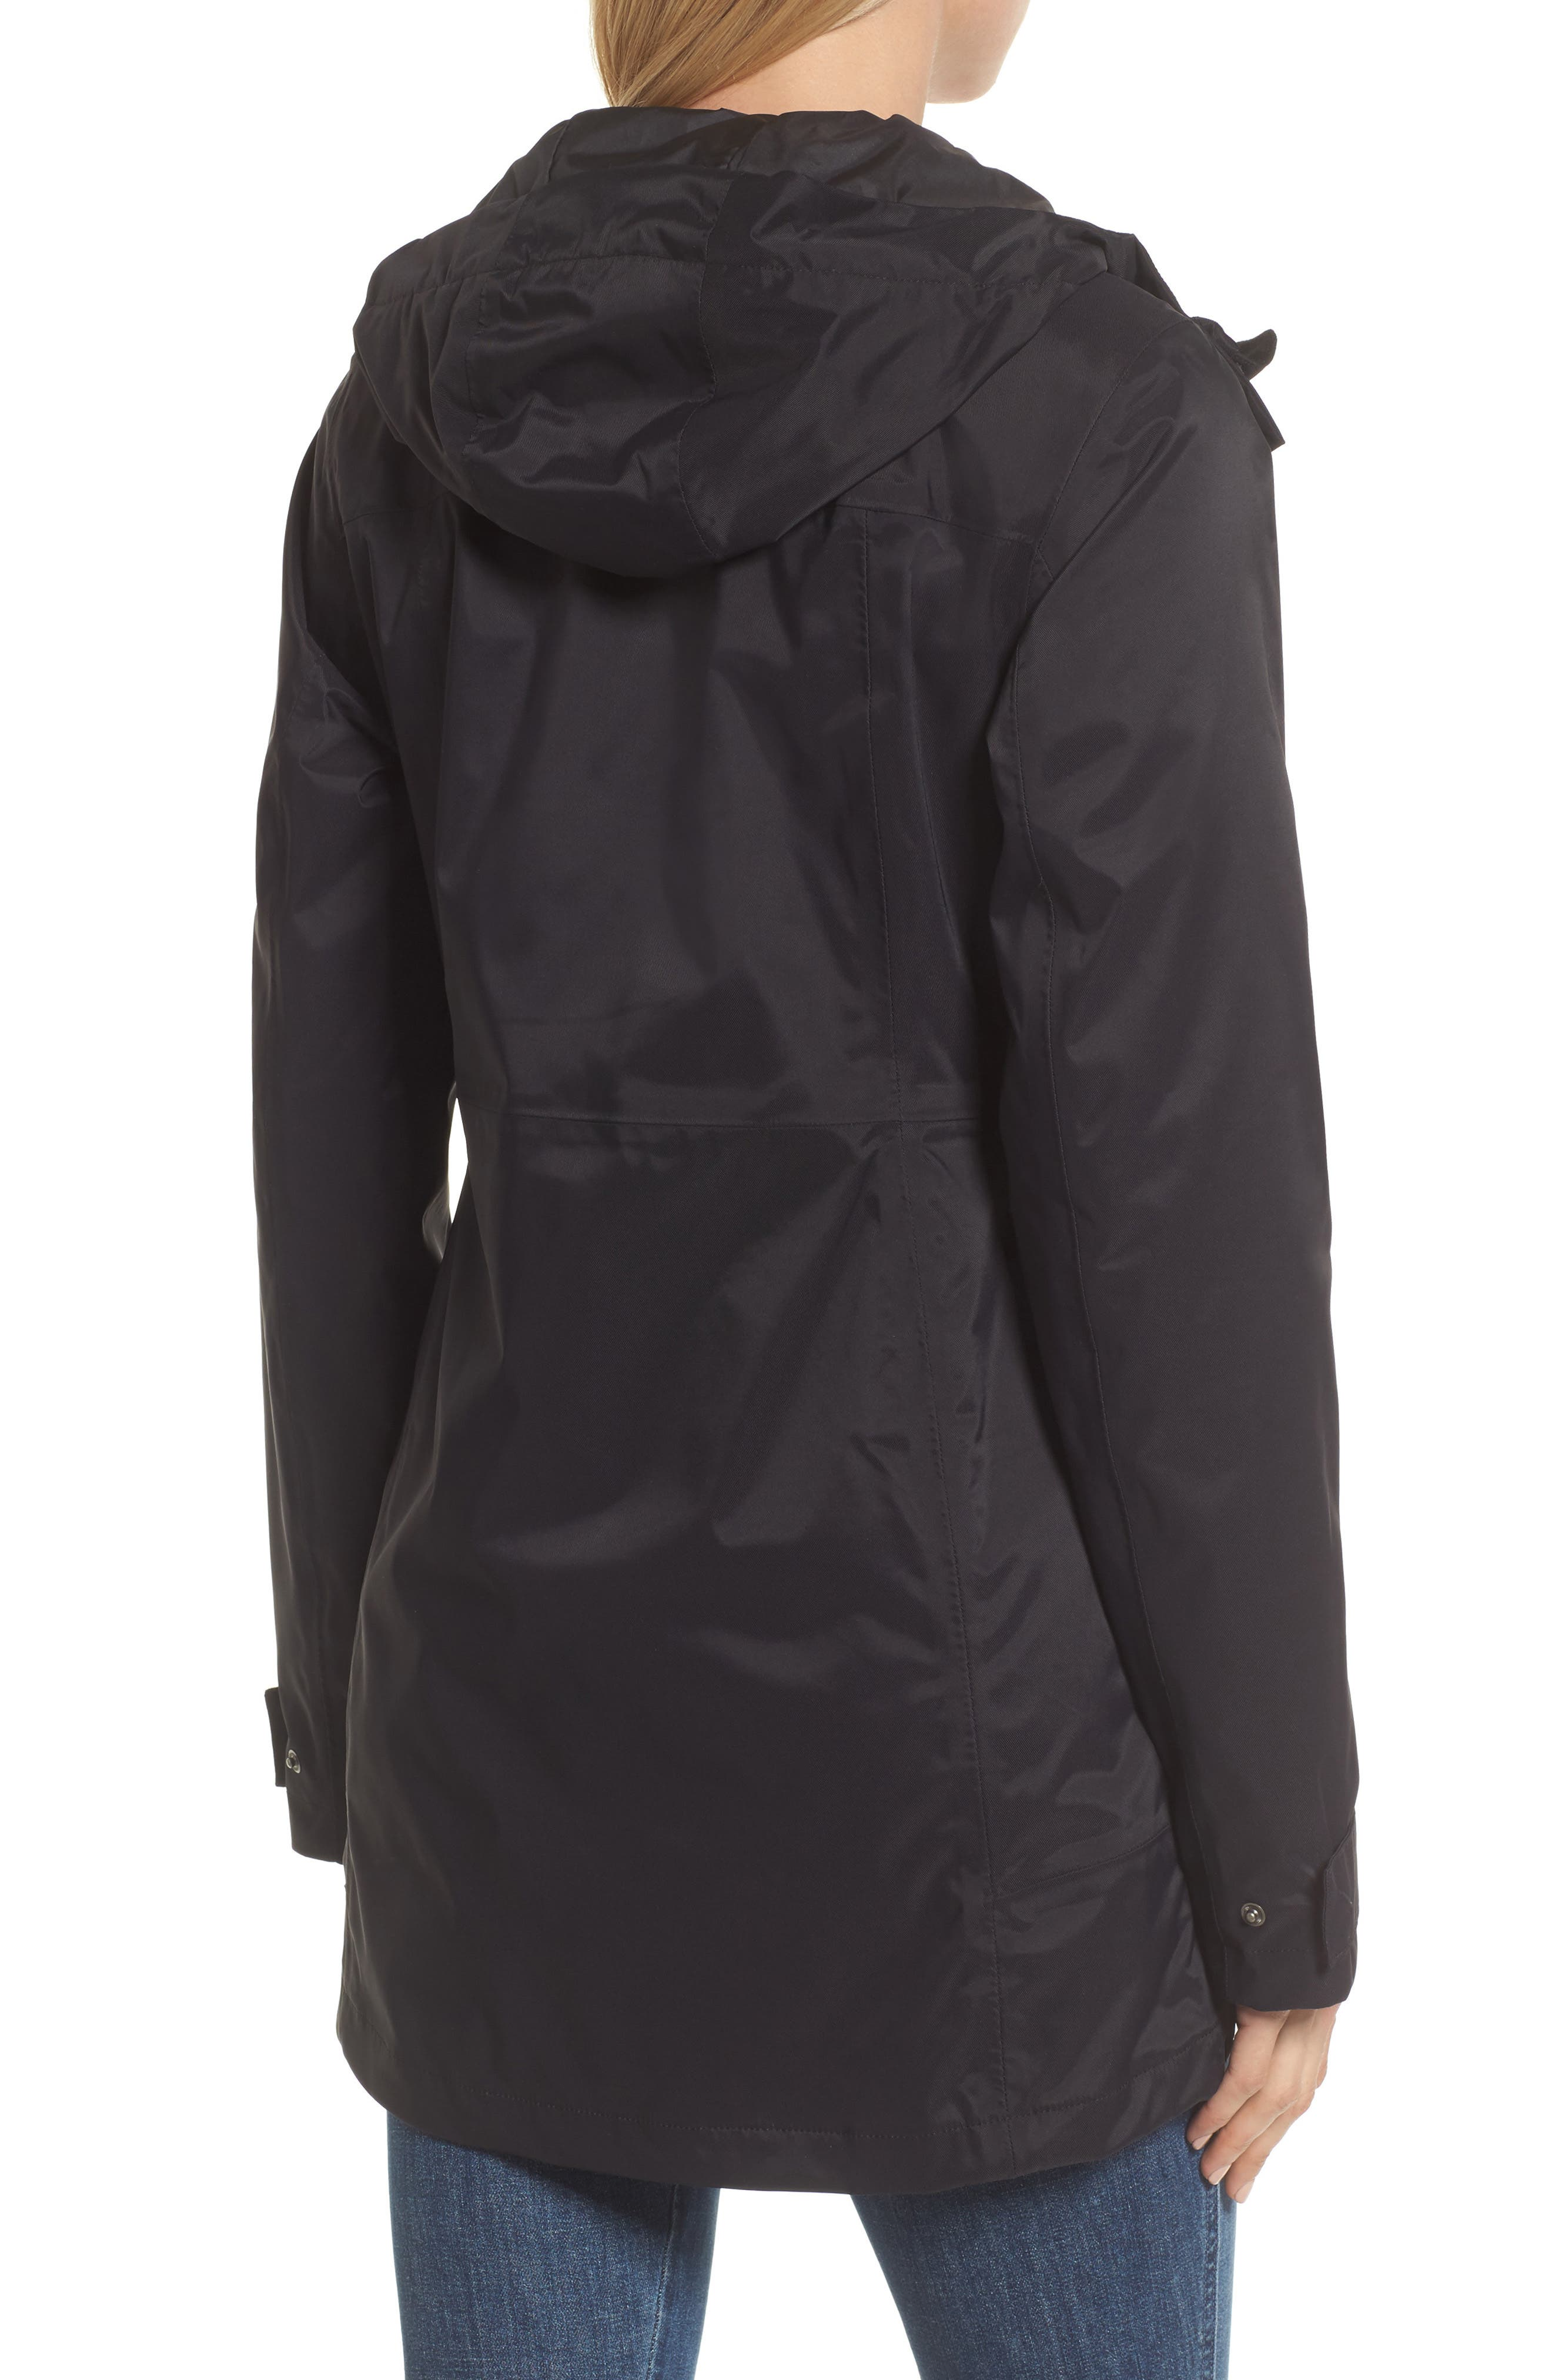 THE NORTH FACE, City Midi Trench Coat, Alternate thumbnail 2, color, 001